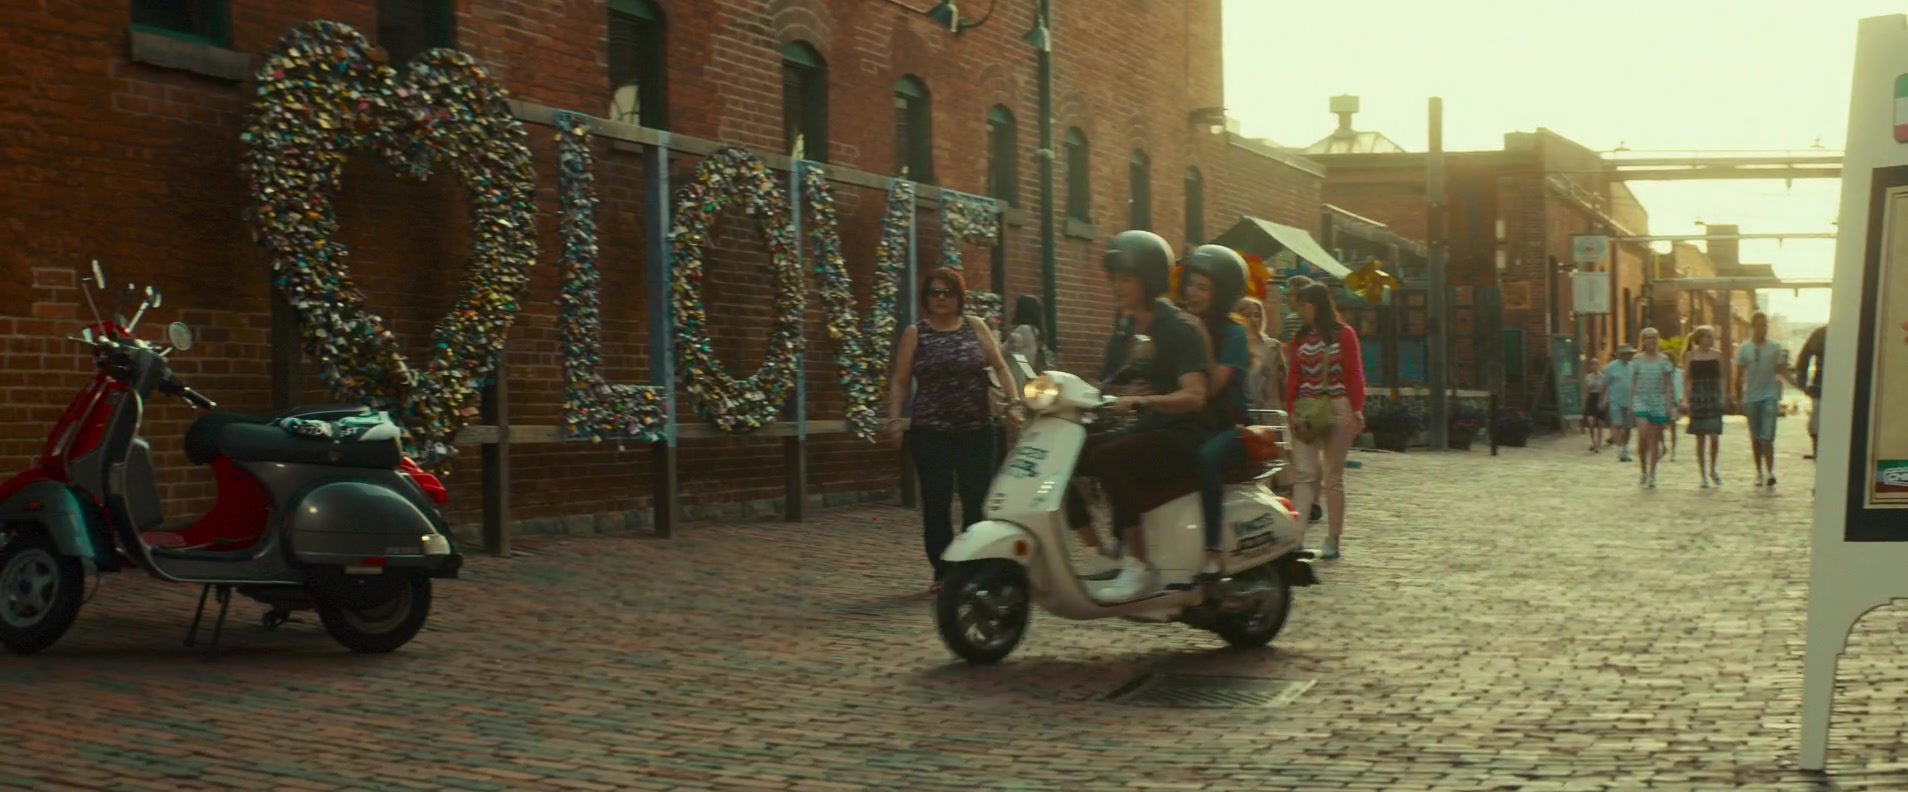 Vespa Scooter In Little Italy 2018 Movie